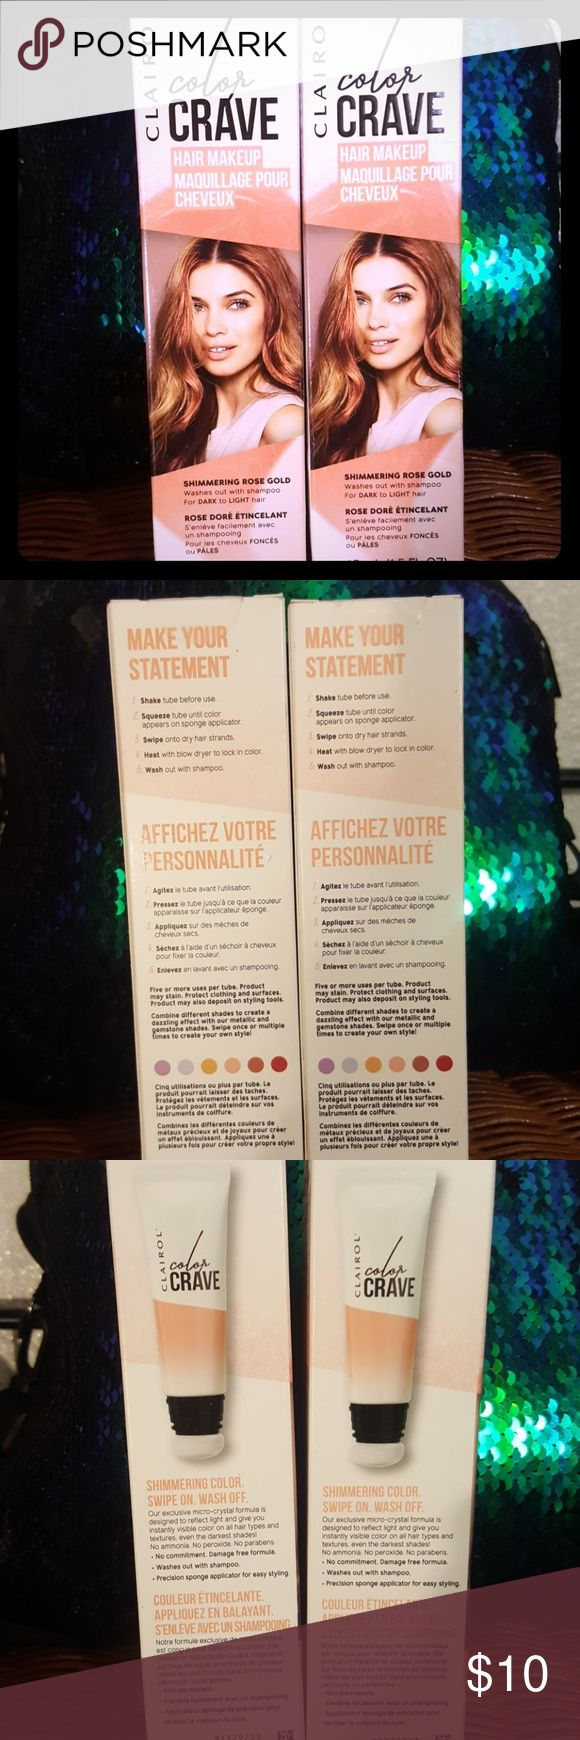 (2) New in Box Rose Gold Clairol Hair Makeup Clairol Color